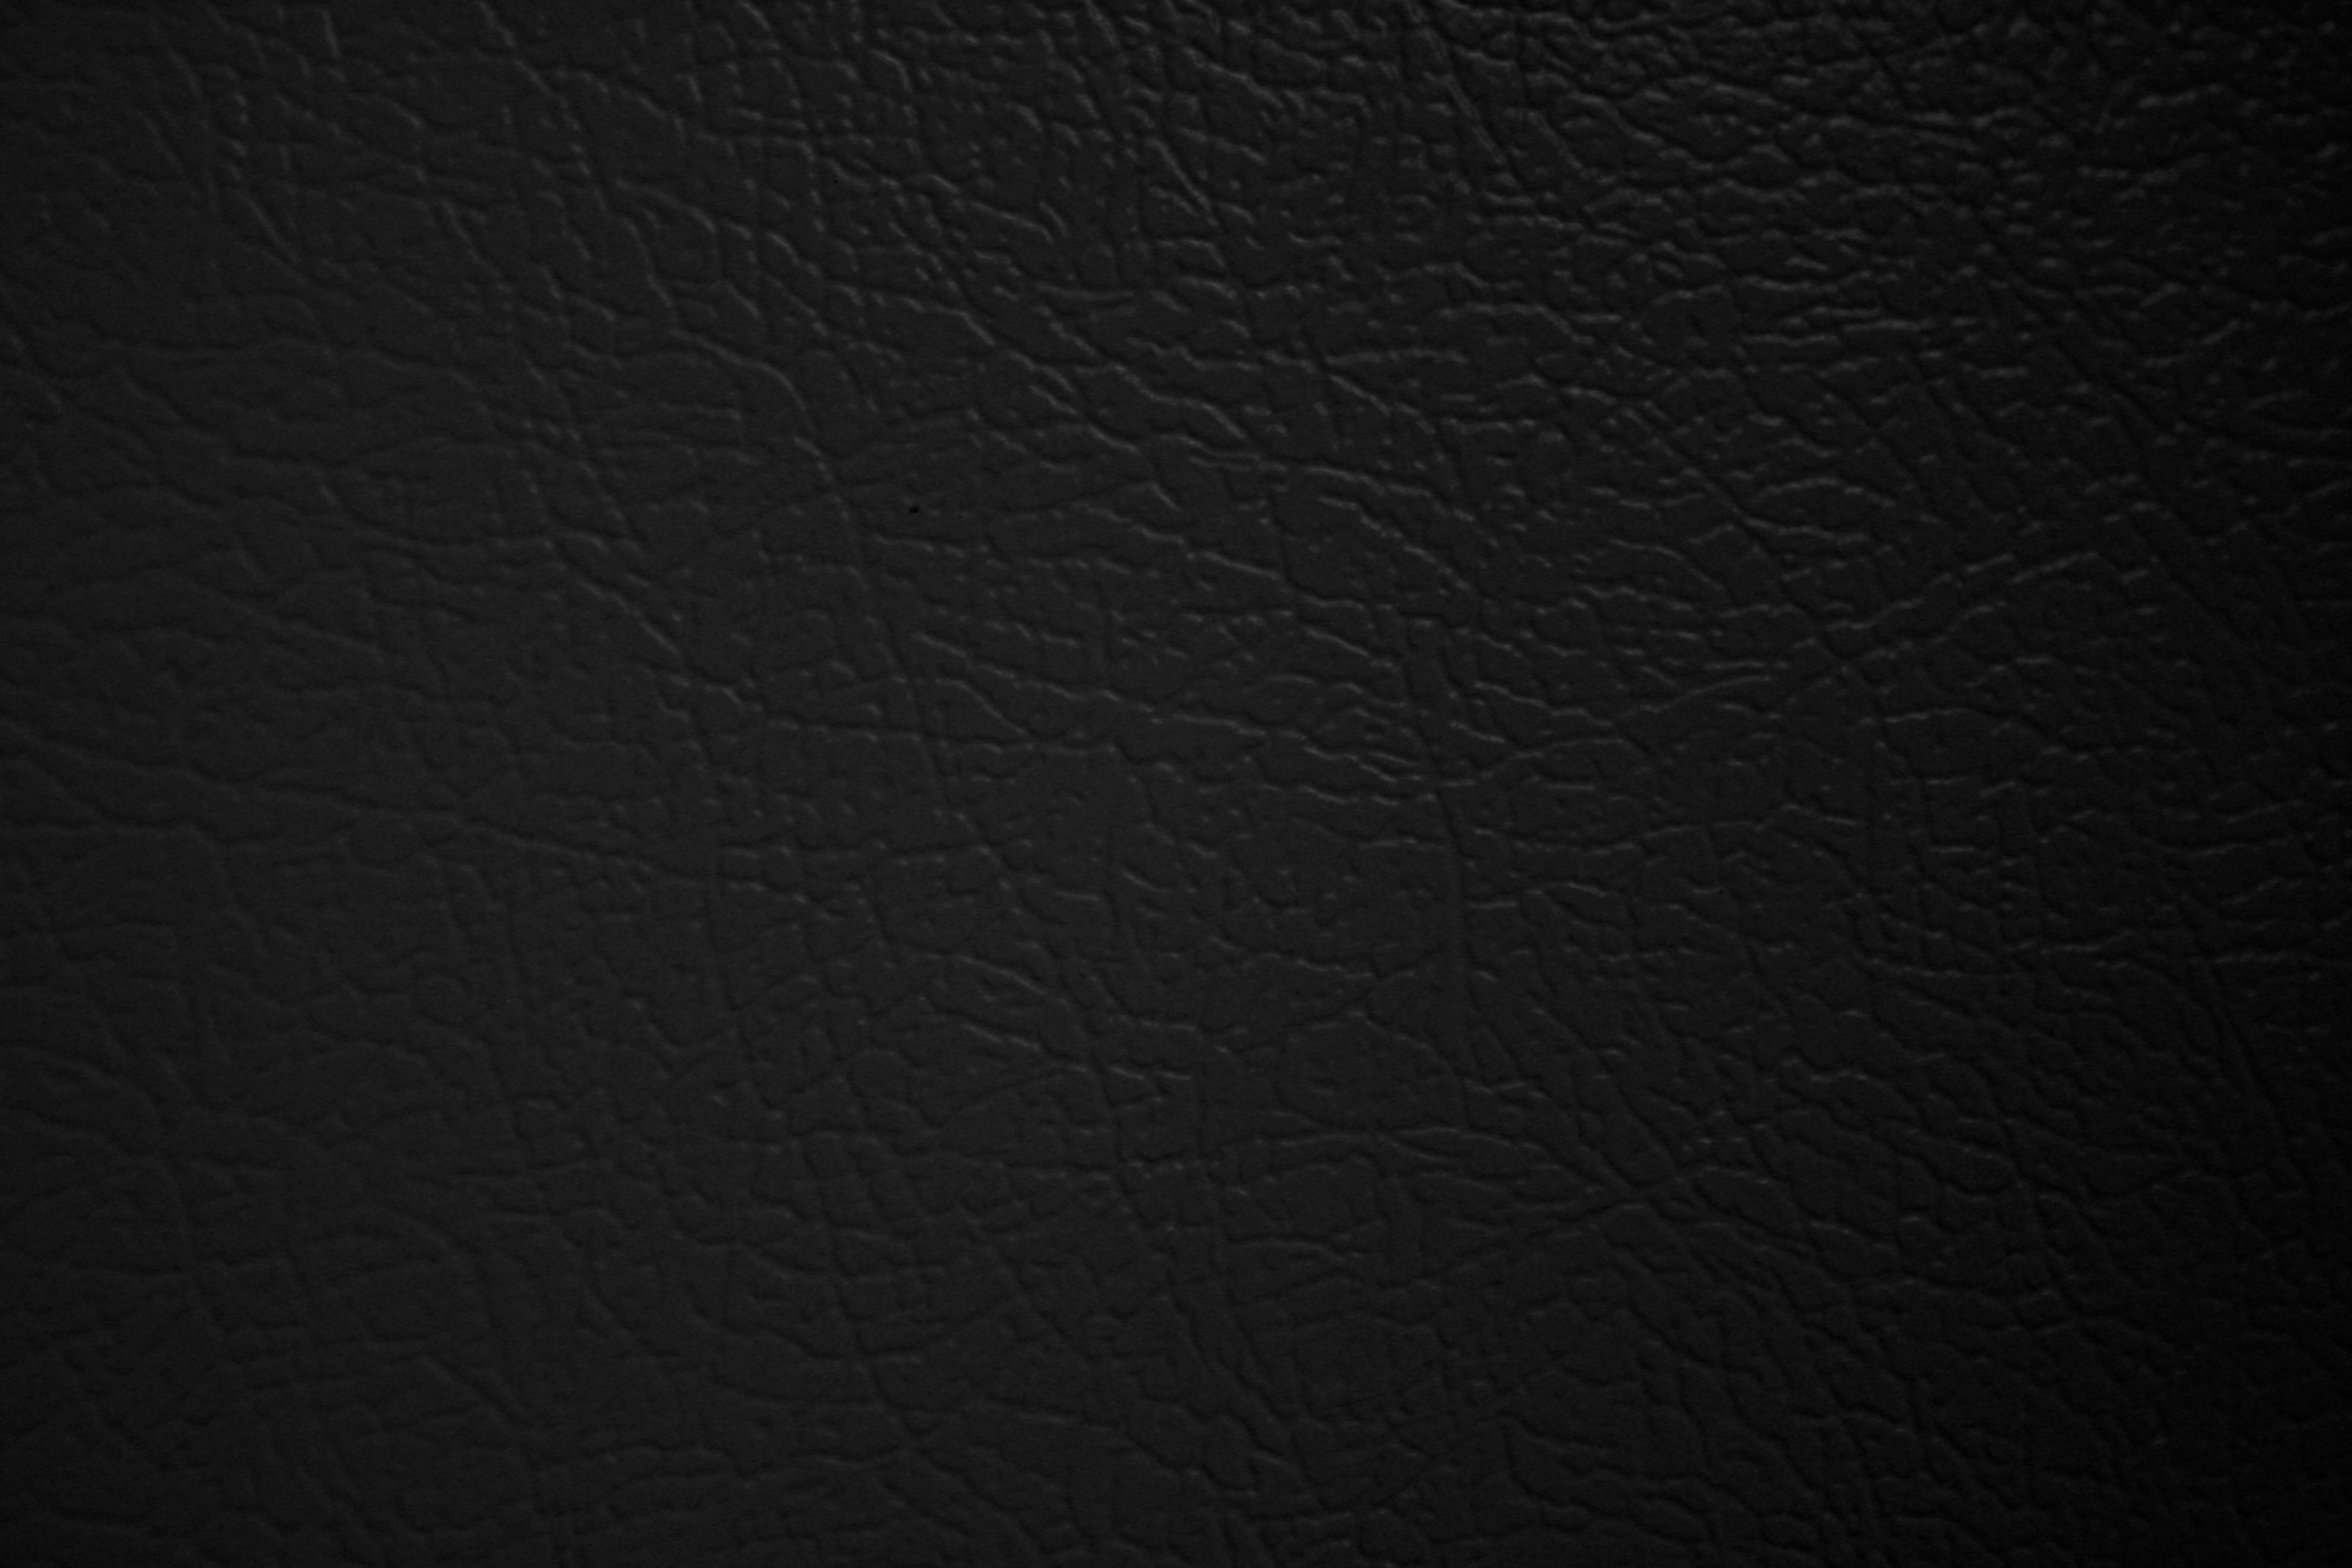 black texture wallpapers 3856 - photo #36